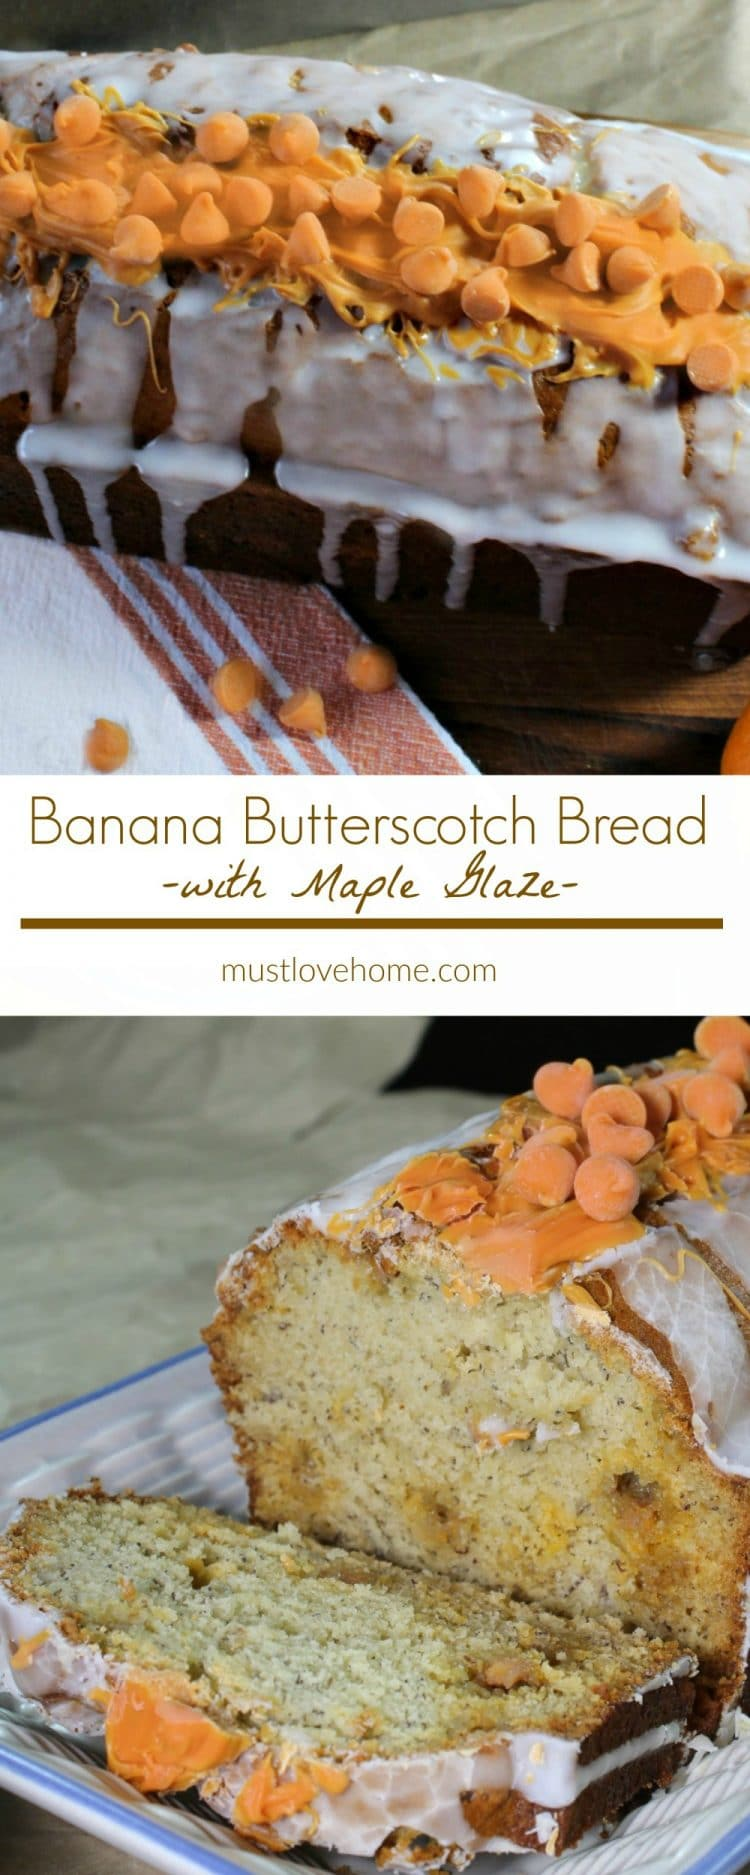 Moist and delicious, this Banana Bread is brimming with natural banana flavor and sweet butterscotch morsels. It is an easy recipe classic that your family will love. Bake a batch today in your own kitchen!